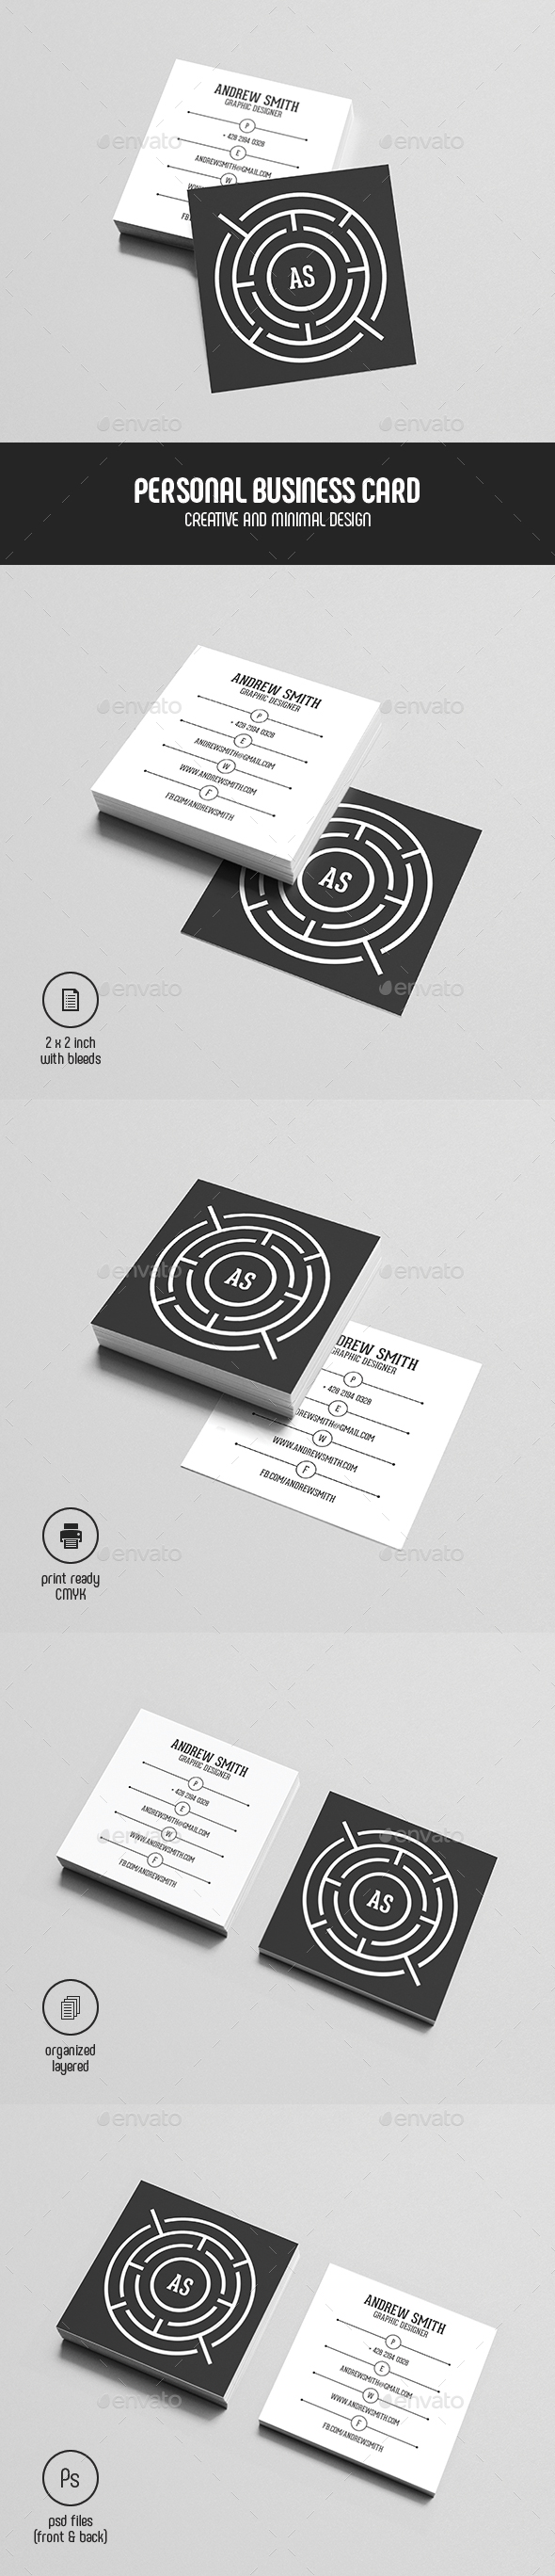 Square Personal Business Card - Creative Business Cards